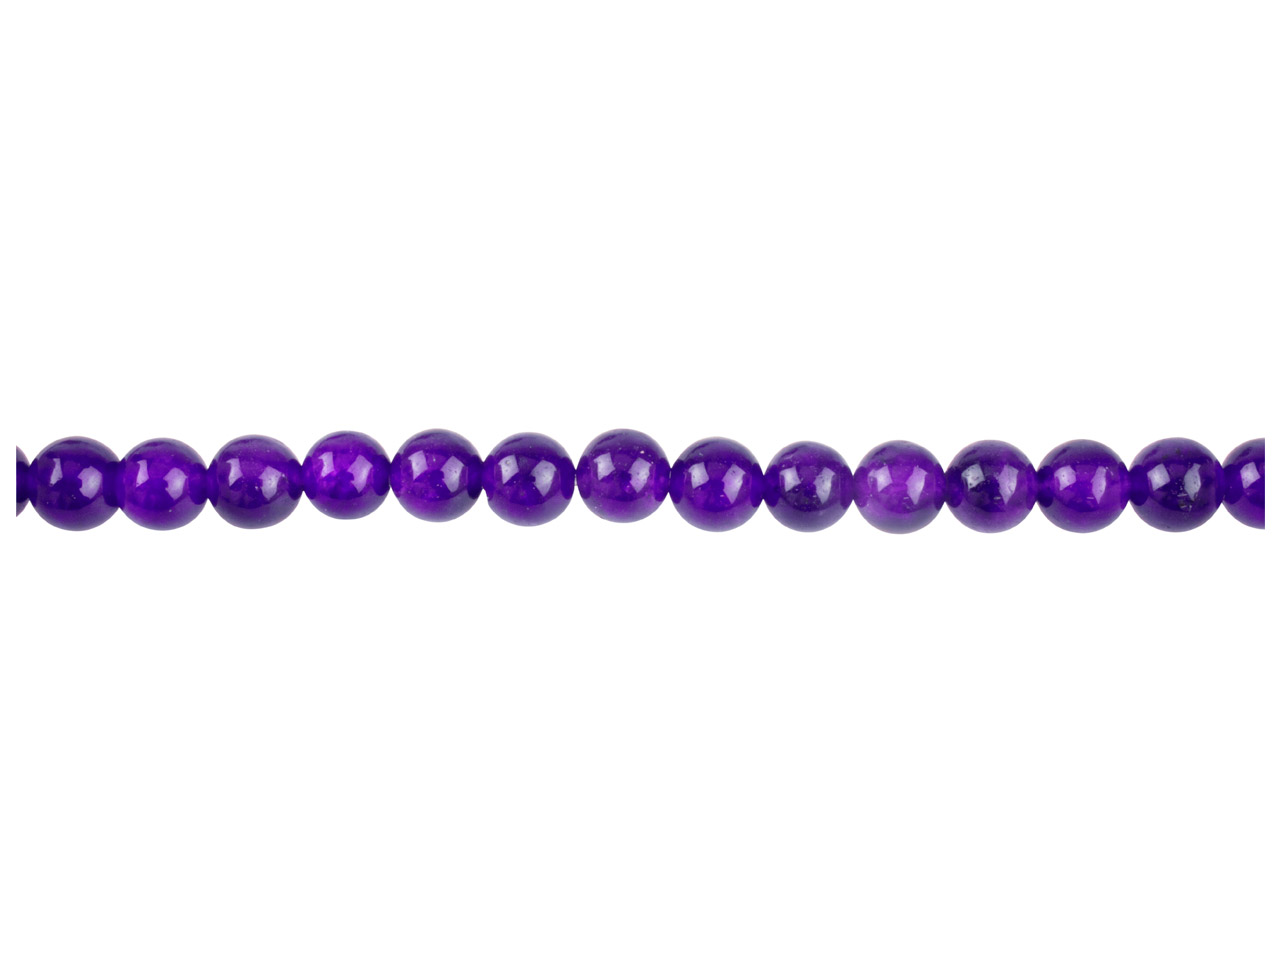 Dyed Lilac Jade Semi Precious Round Beads 6mm, 16